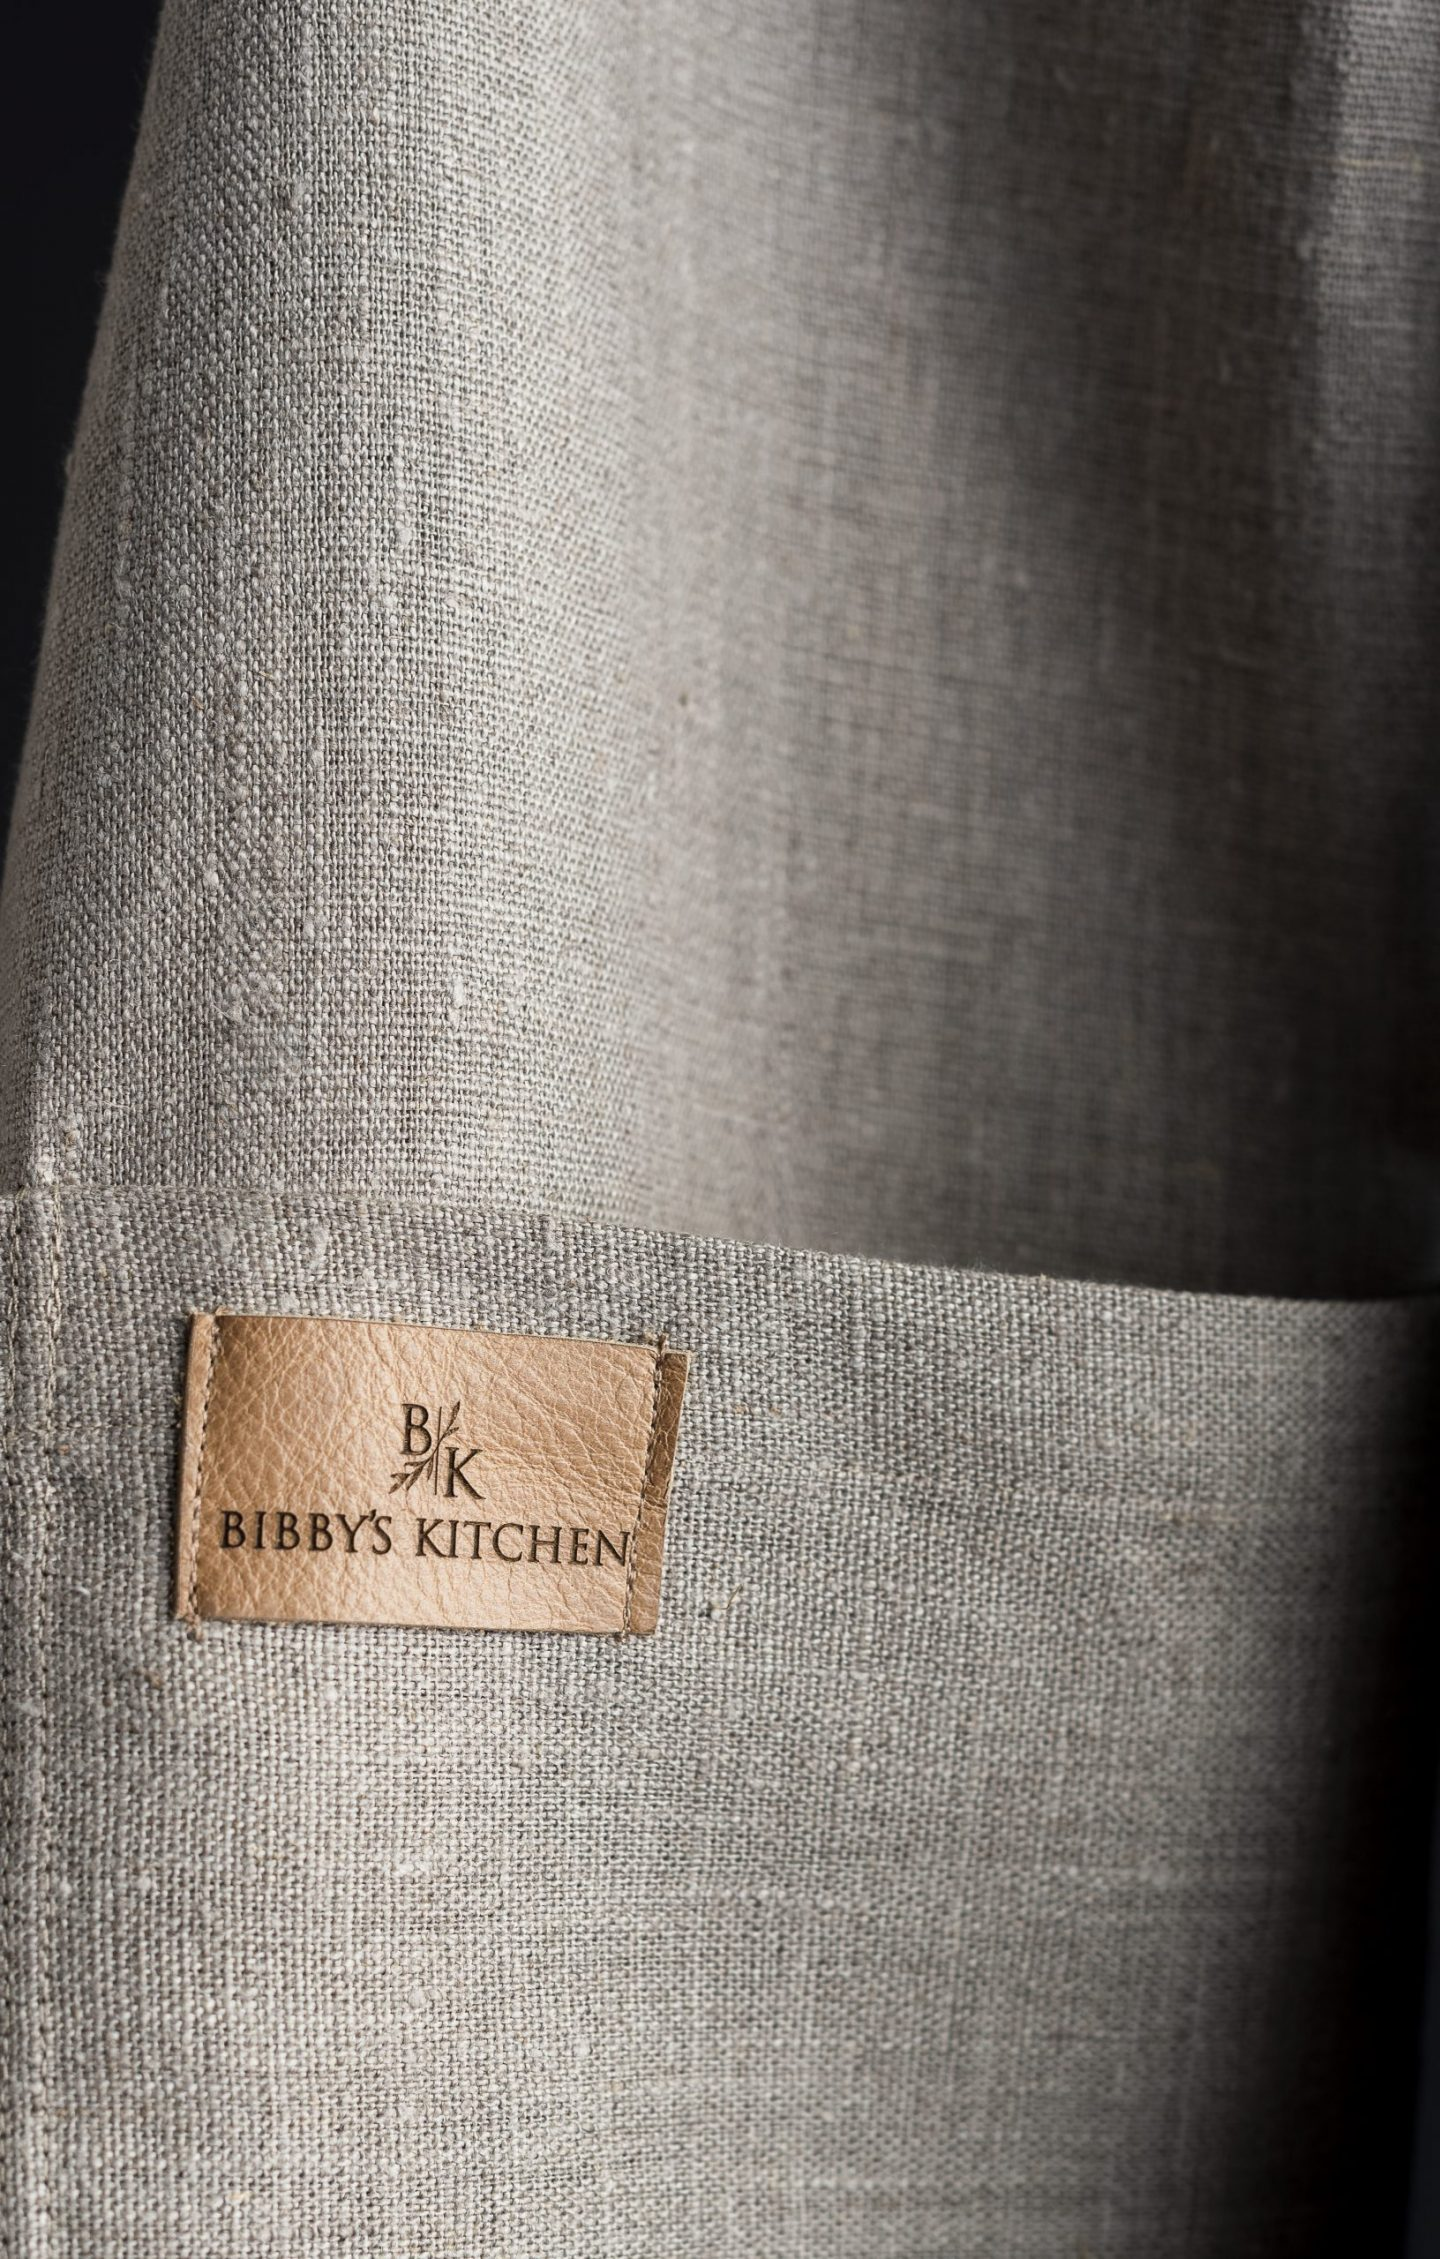 Bibby's Kitchen Cooks Collection